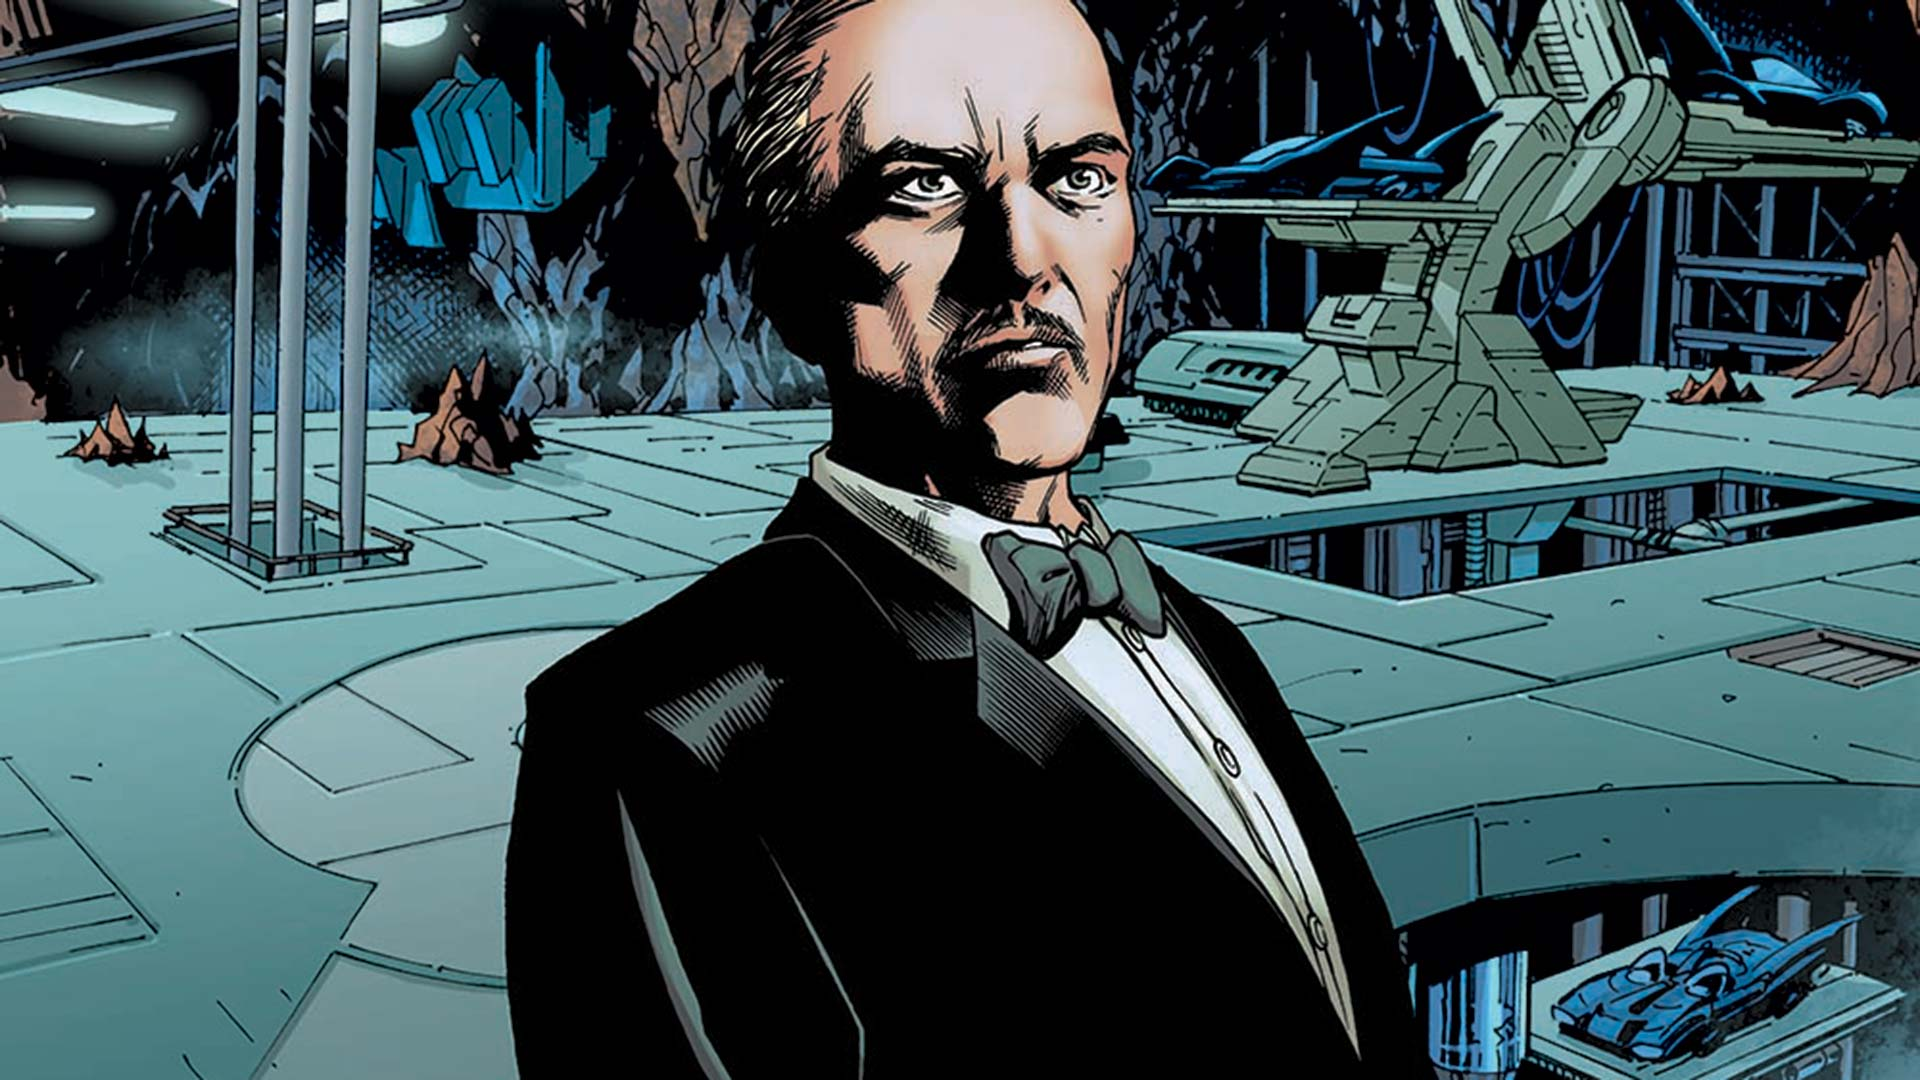 Gotham team's young Alfred series has found its star